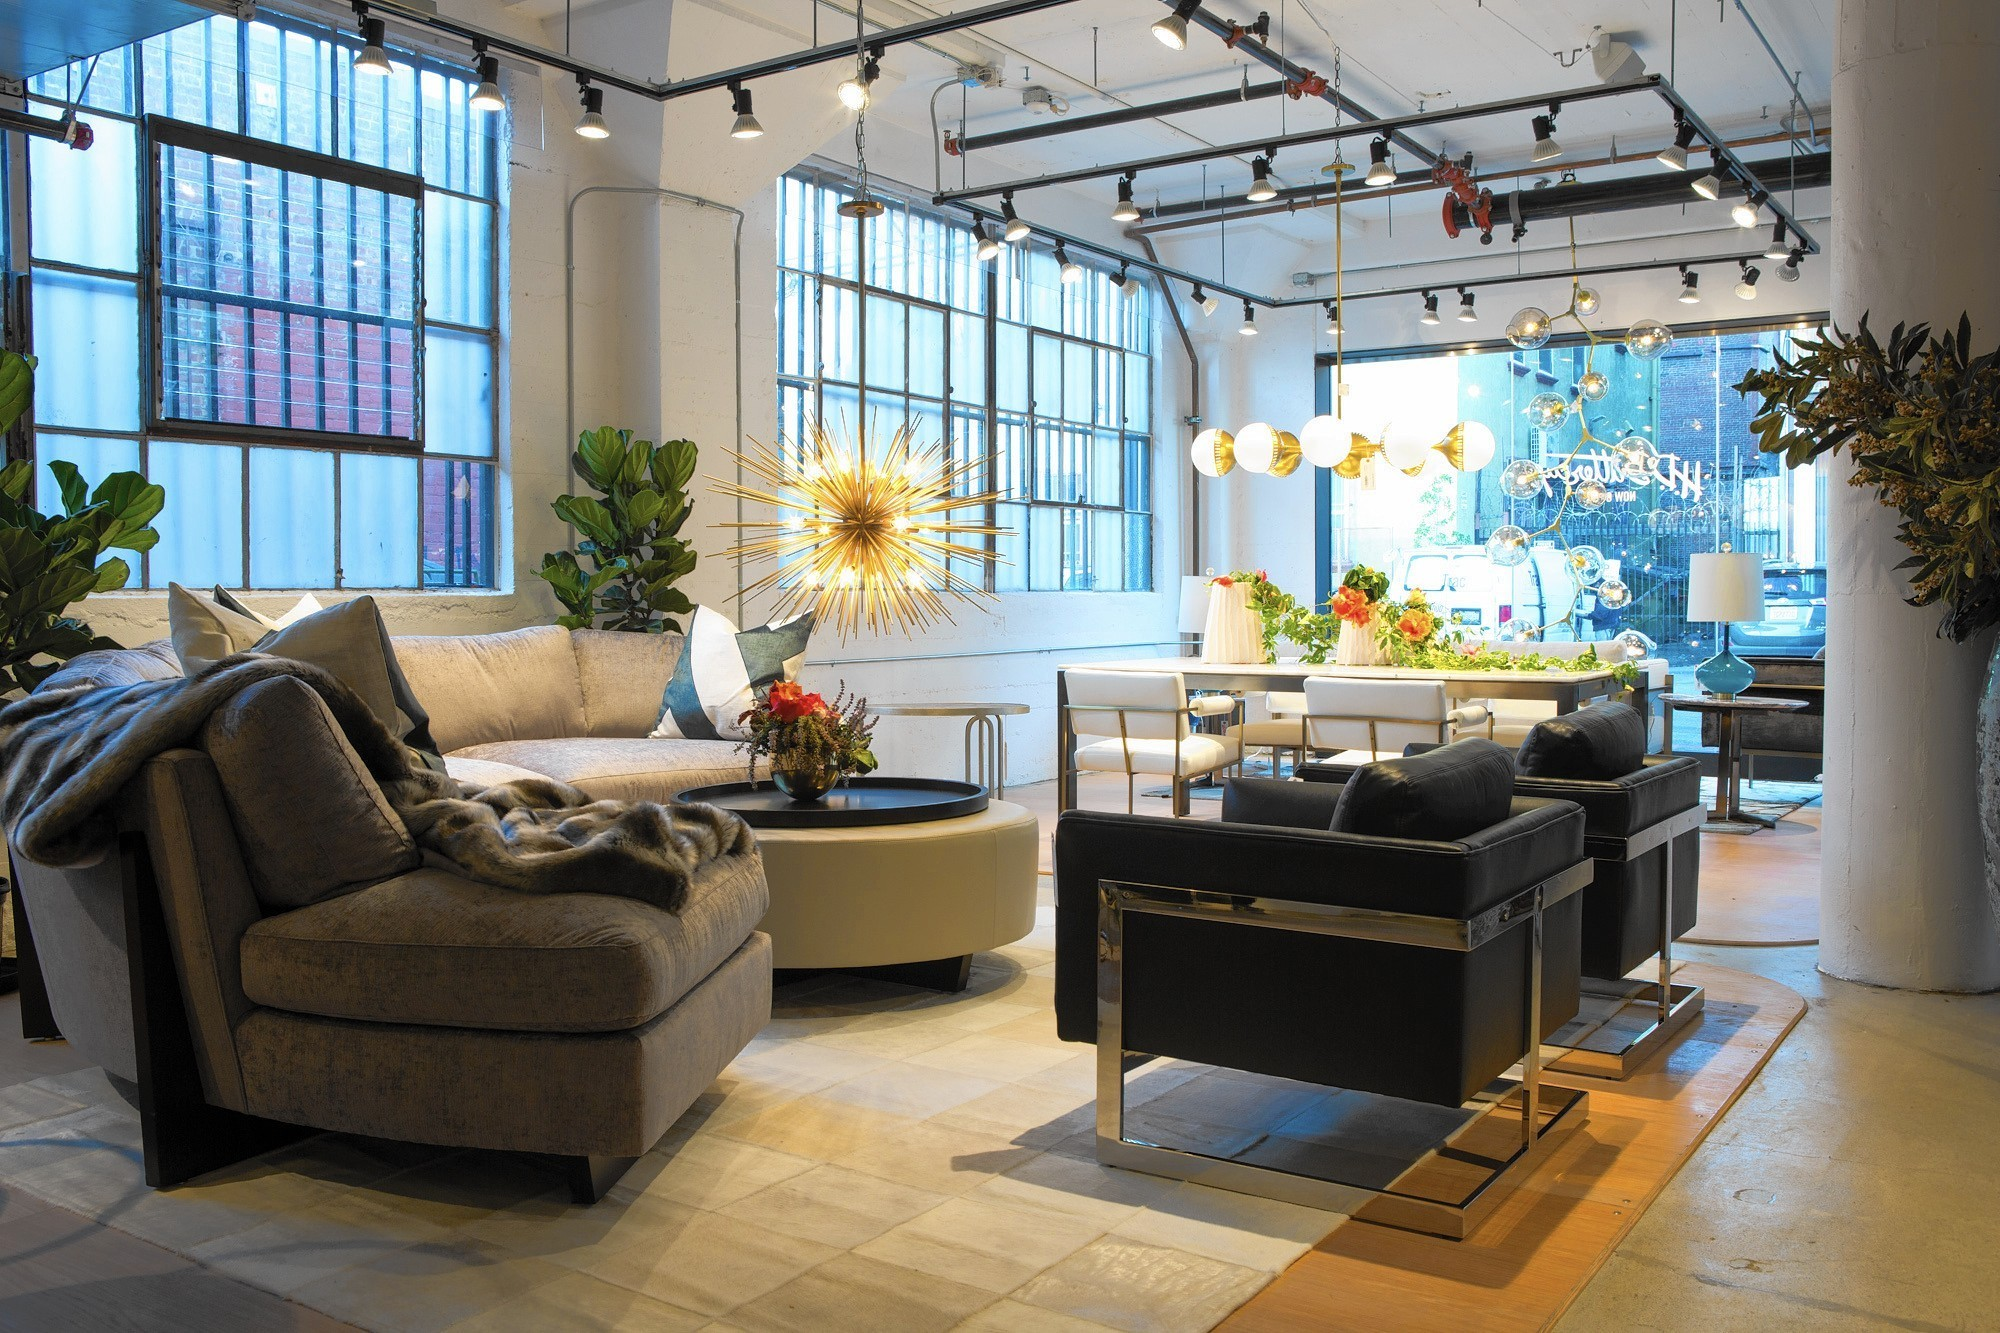 Exceptionnel The New H.D. Buttercup Furnishings Showroom In DTLA Caters To Sophisticated  Urban Dwellers